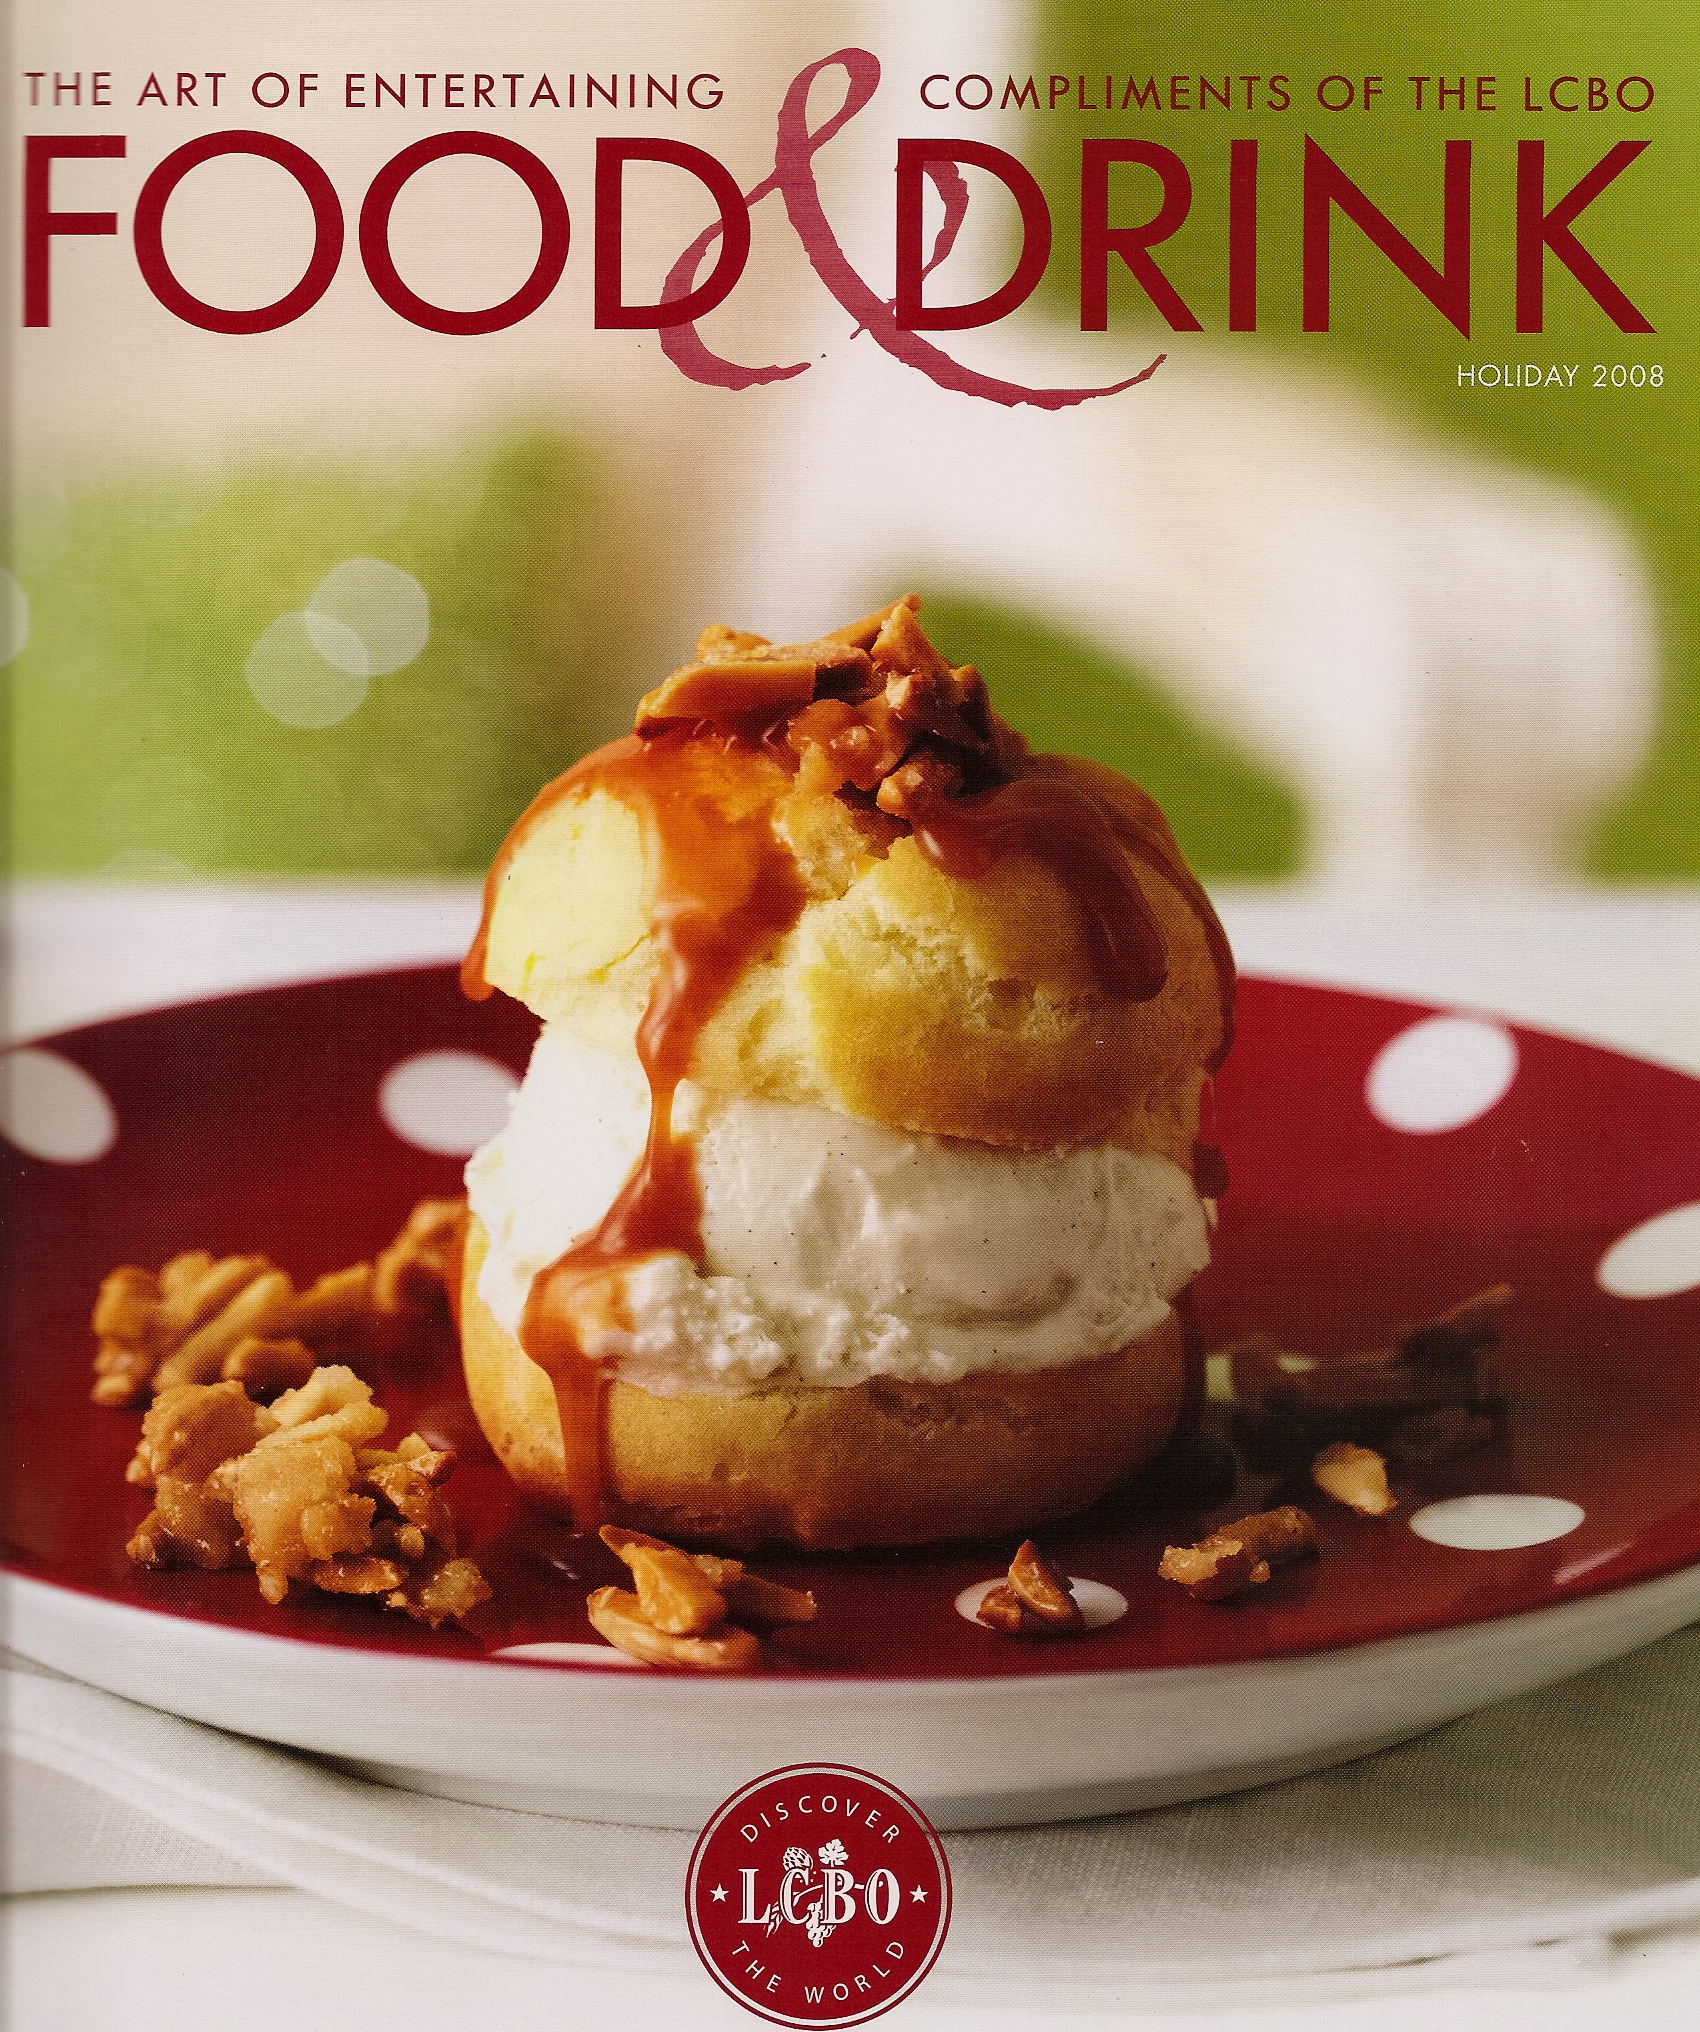 LCBO's Food & Drink magazine - 2008 Holiday Issue